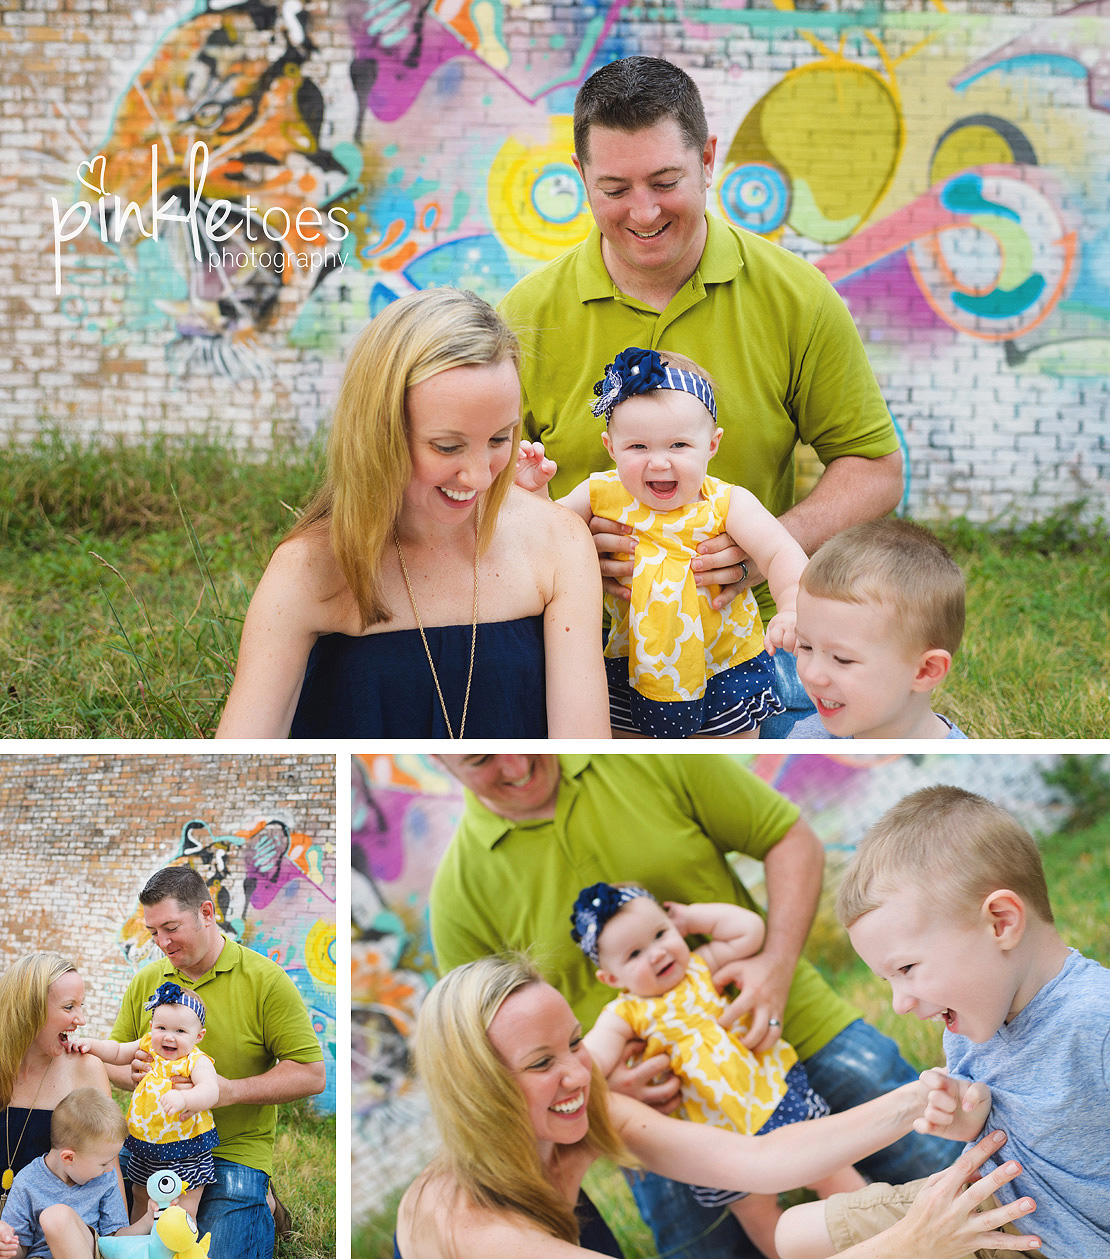 austin-colorful-bright-family-kids-hello-urban-photography-13